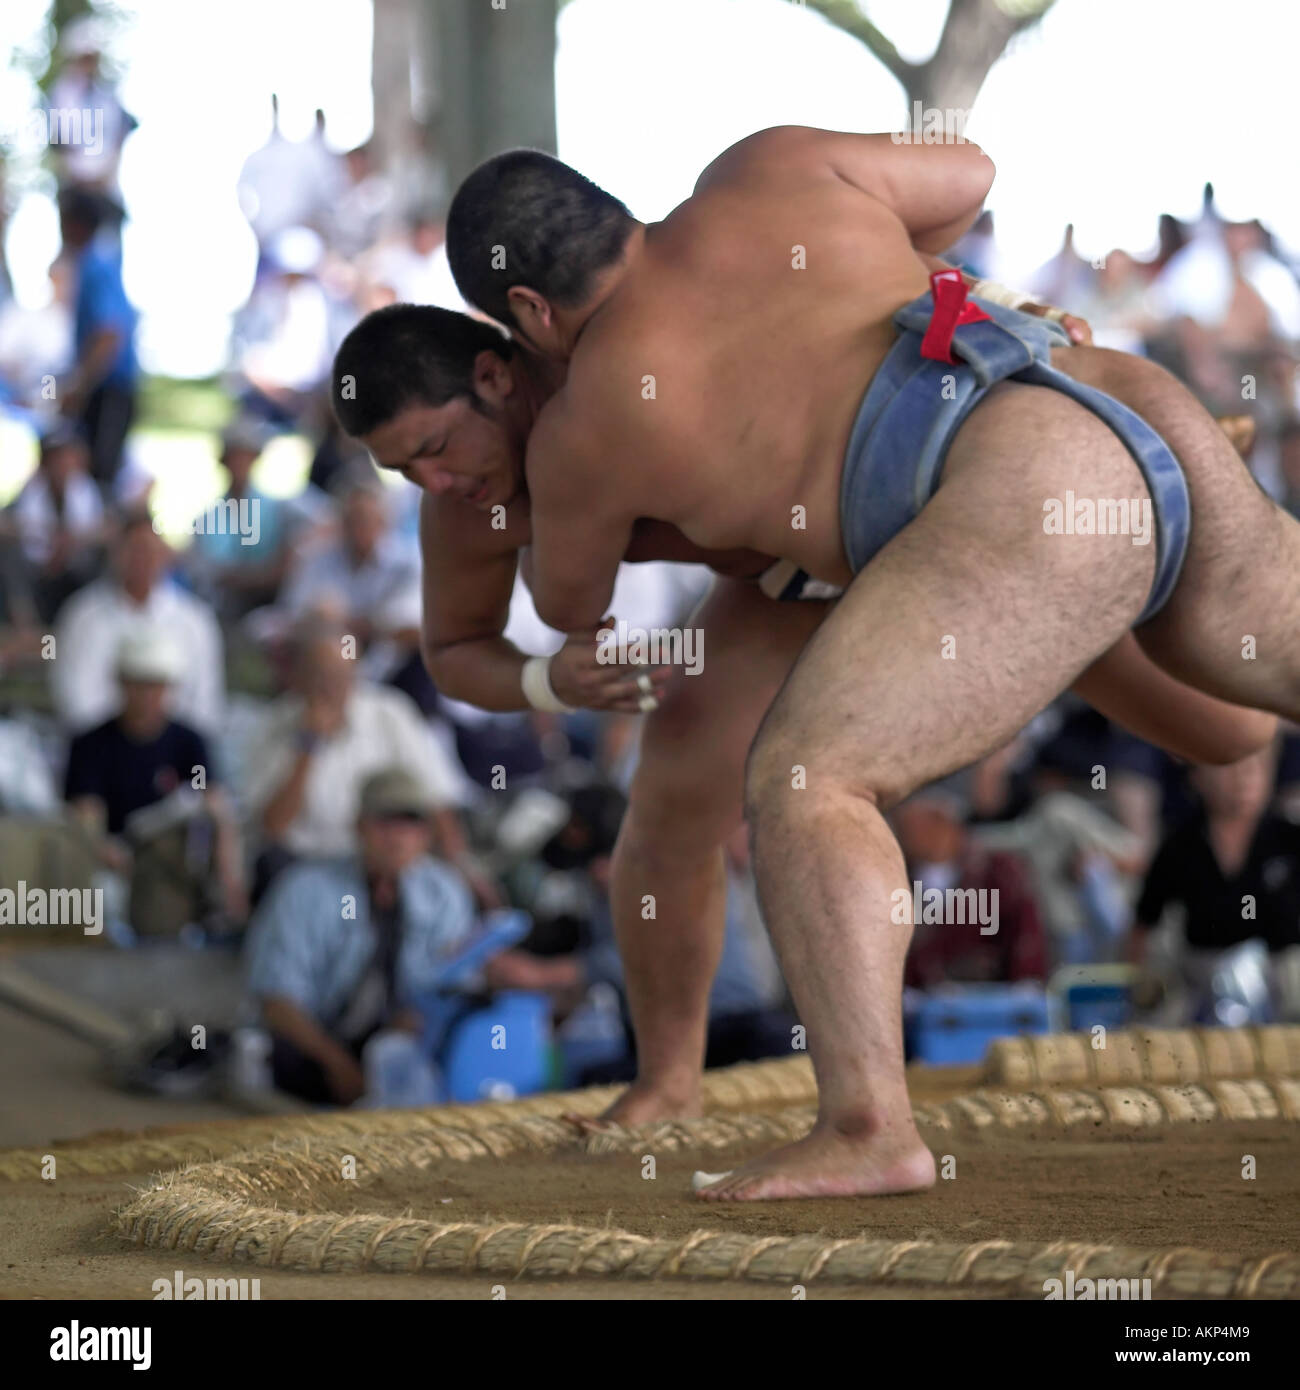 All japan university sumo tournament towada city wrestlers wrestling fight  fighting outdoors competition amateur